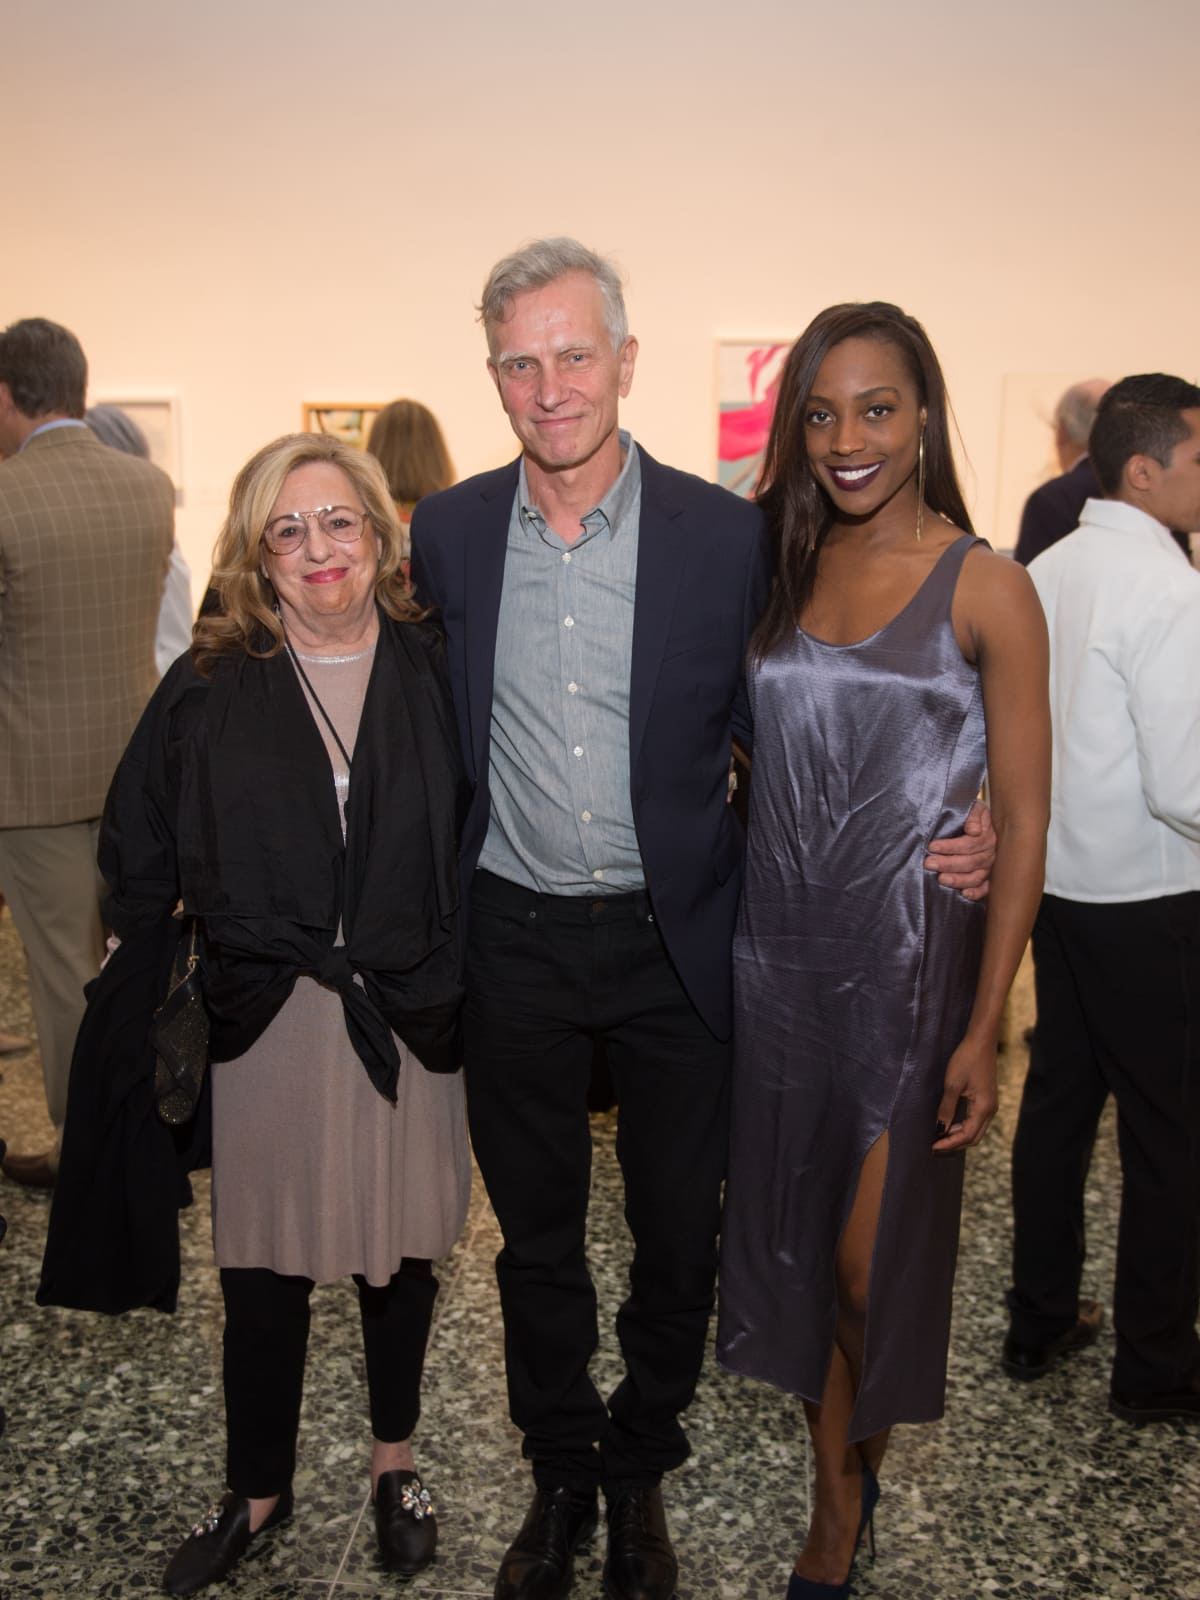 Barbara Davis, Joe Havel, Alecia Harris at Glassell Benefit 2017